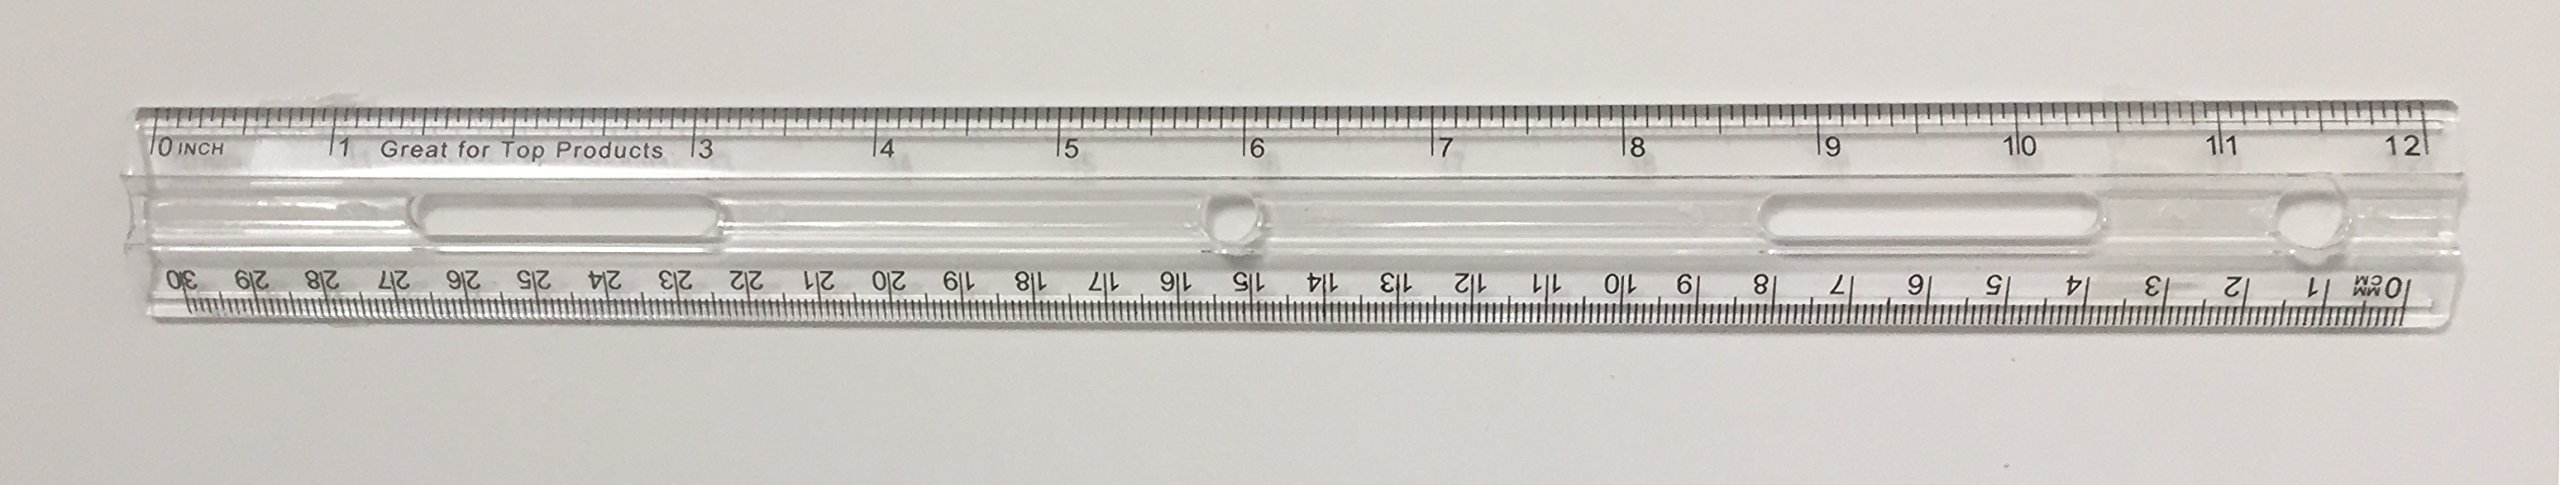 GTP 12'' Crystal Clear, Plastic Rulers, inches, Metric with Hole for Binder-Bulk-Each ruler comes with individual plastic bag (1 pack 36)